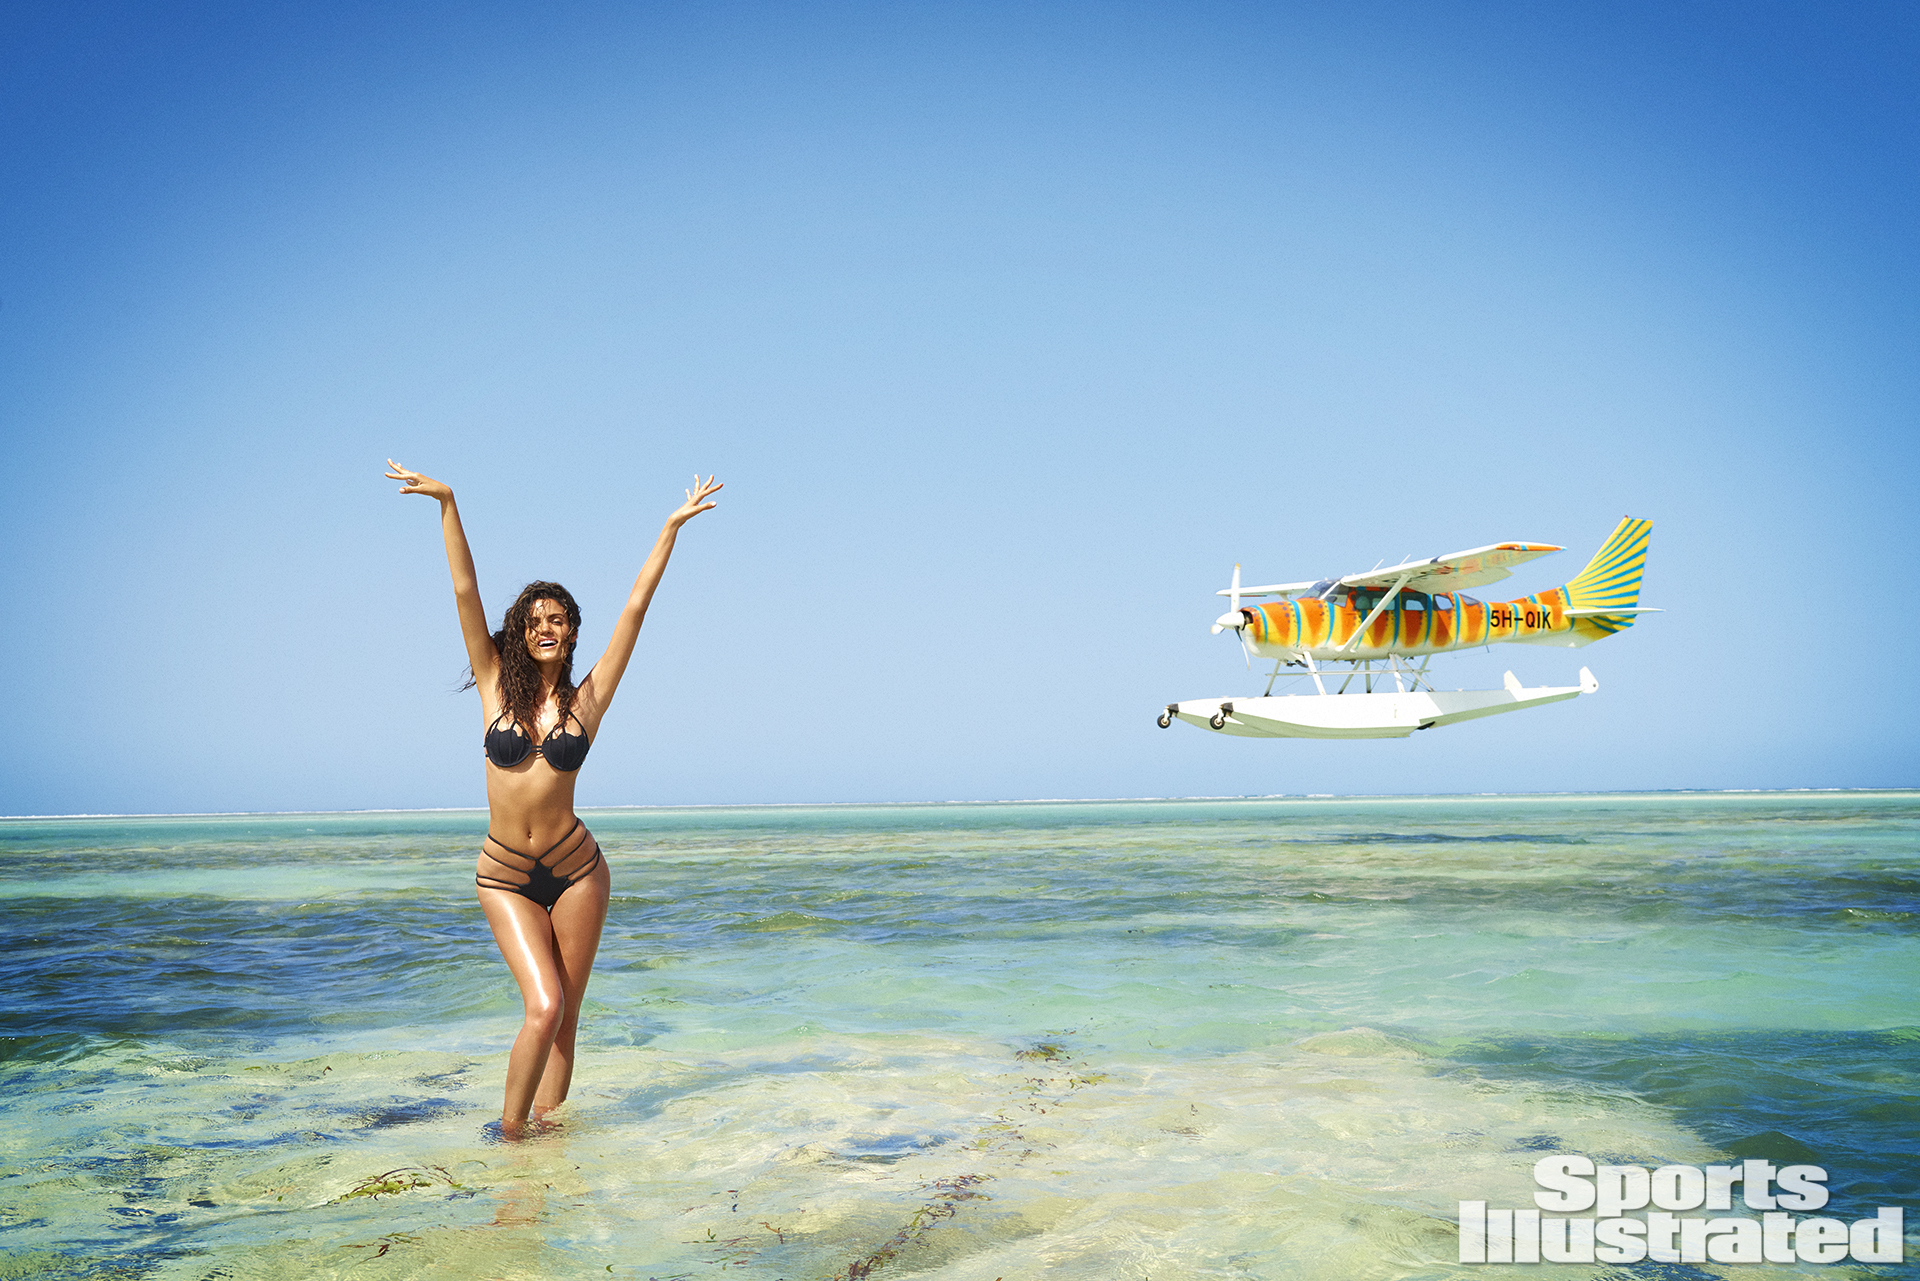 Sofia Resing was photographed by Ruven Afanador in Zanzibar. Swimsuit by Lee + Lani.